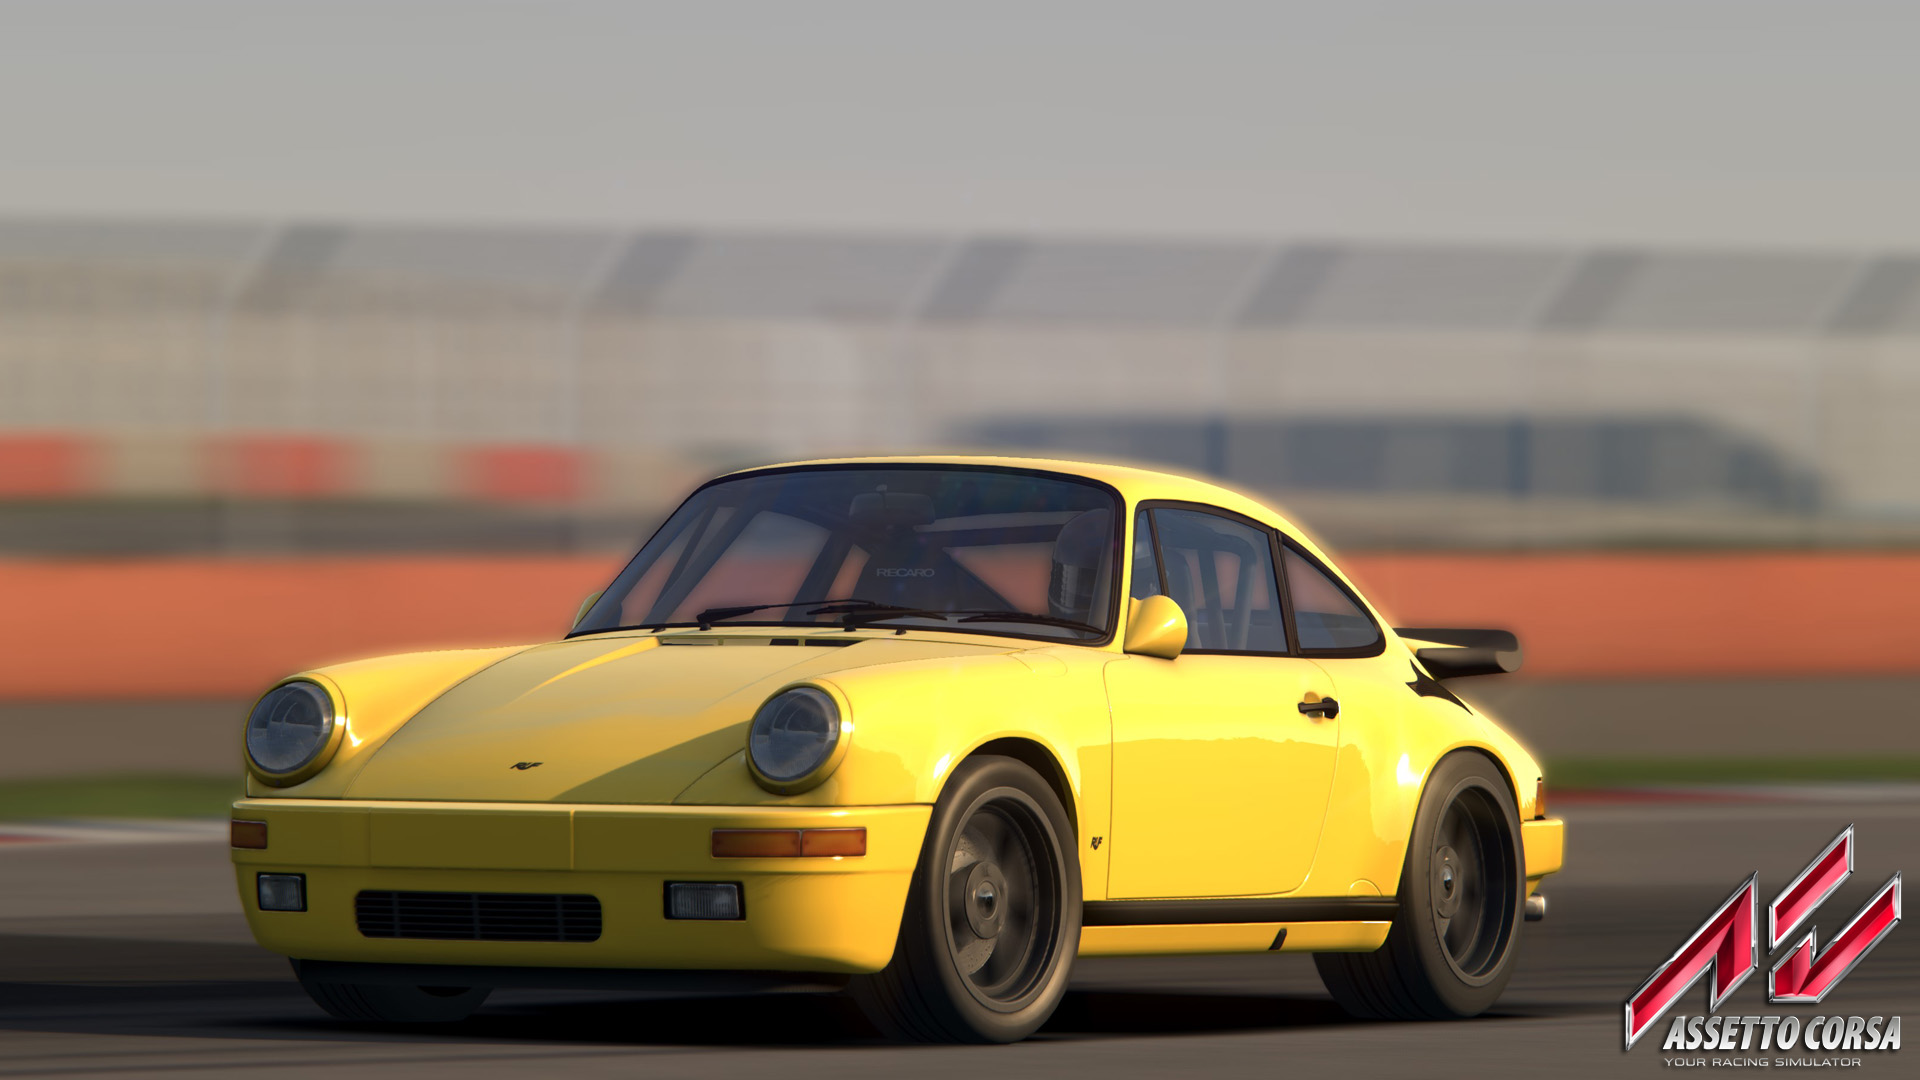 Assetto Corsa (Steam Gift)